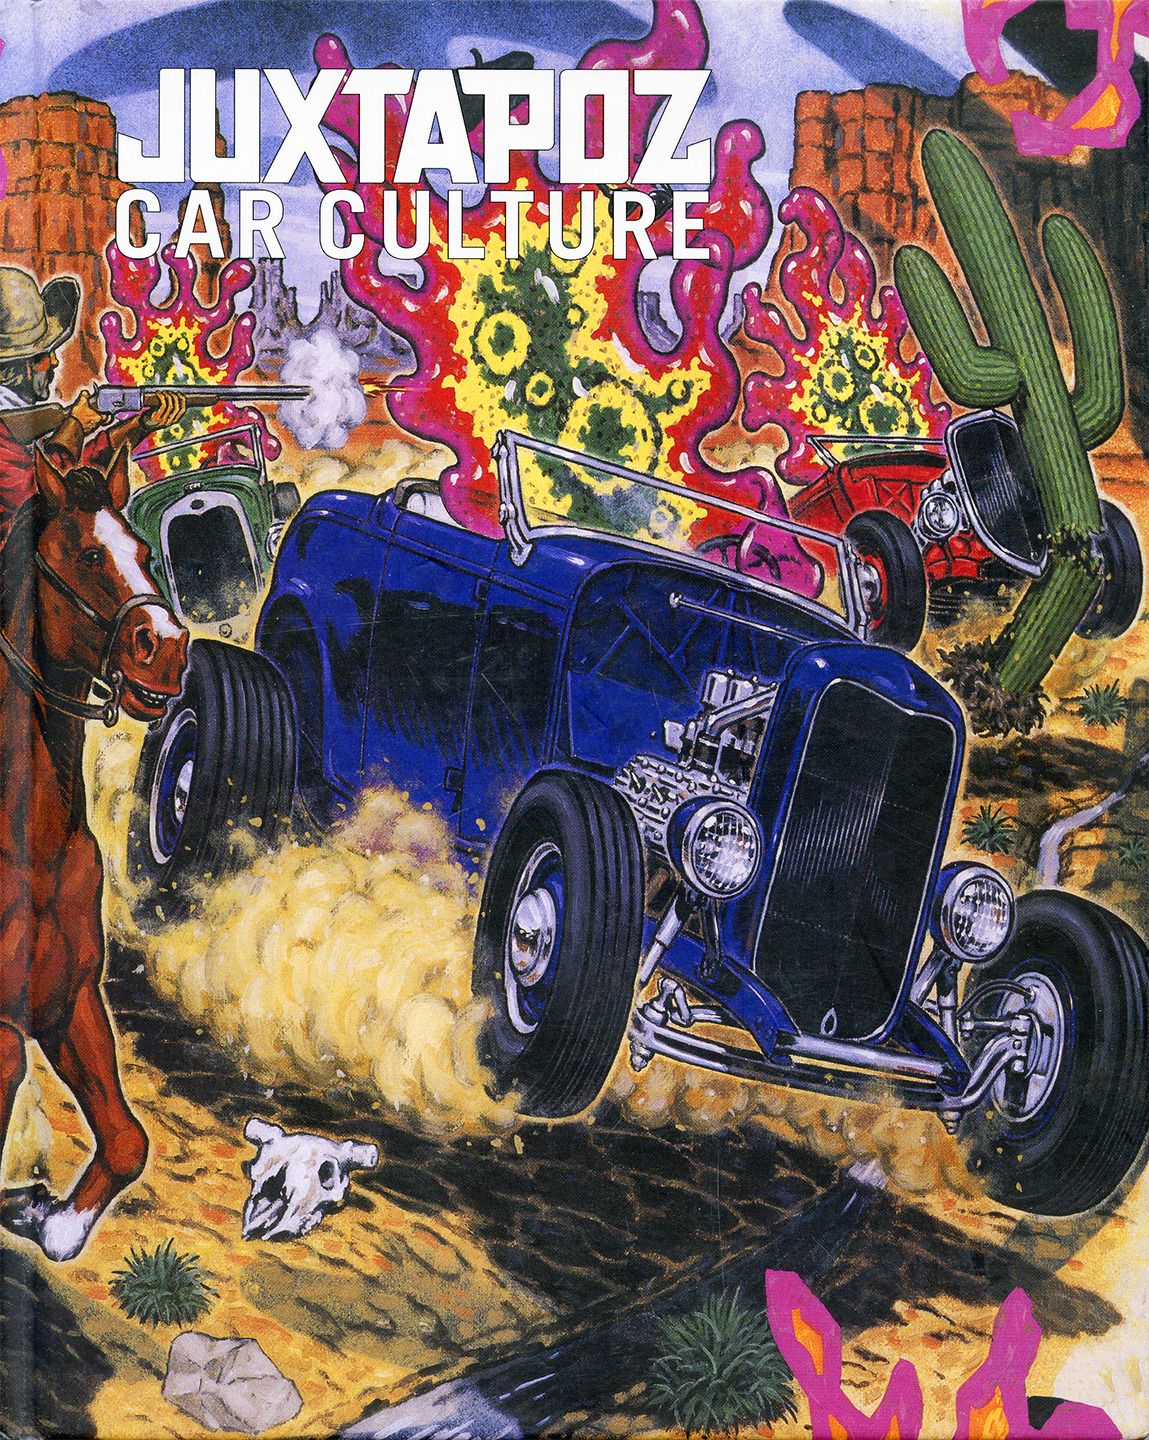 Juxtapoz Car Culture 2009